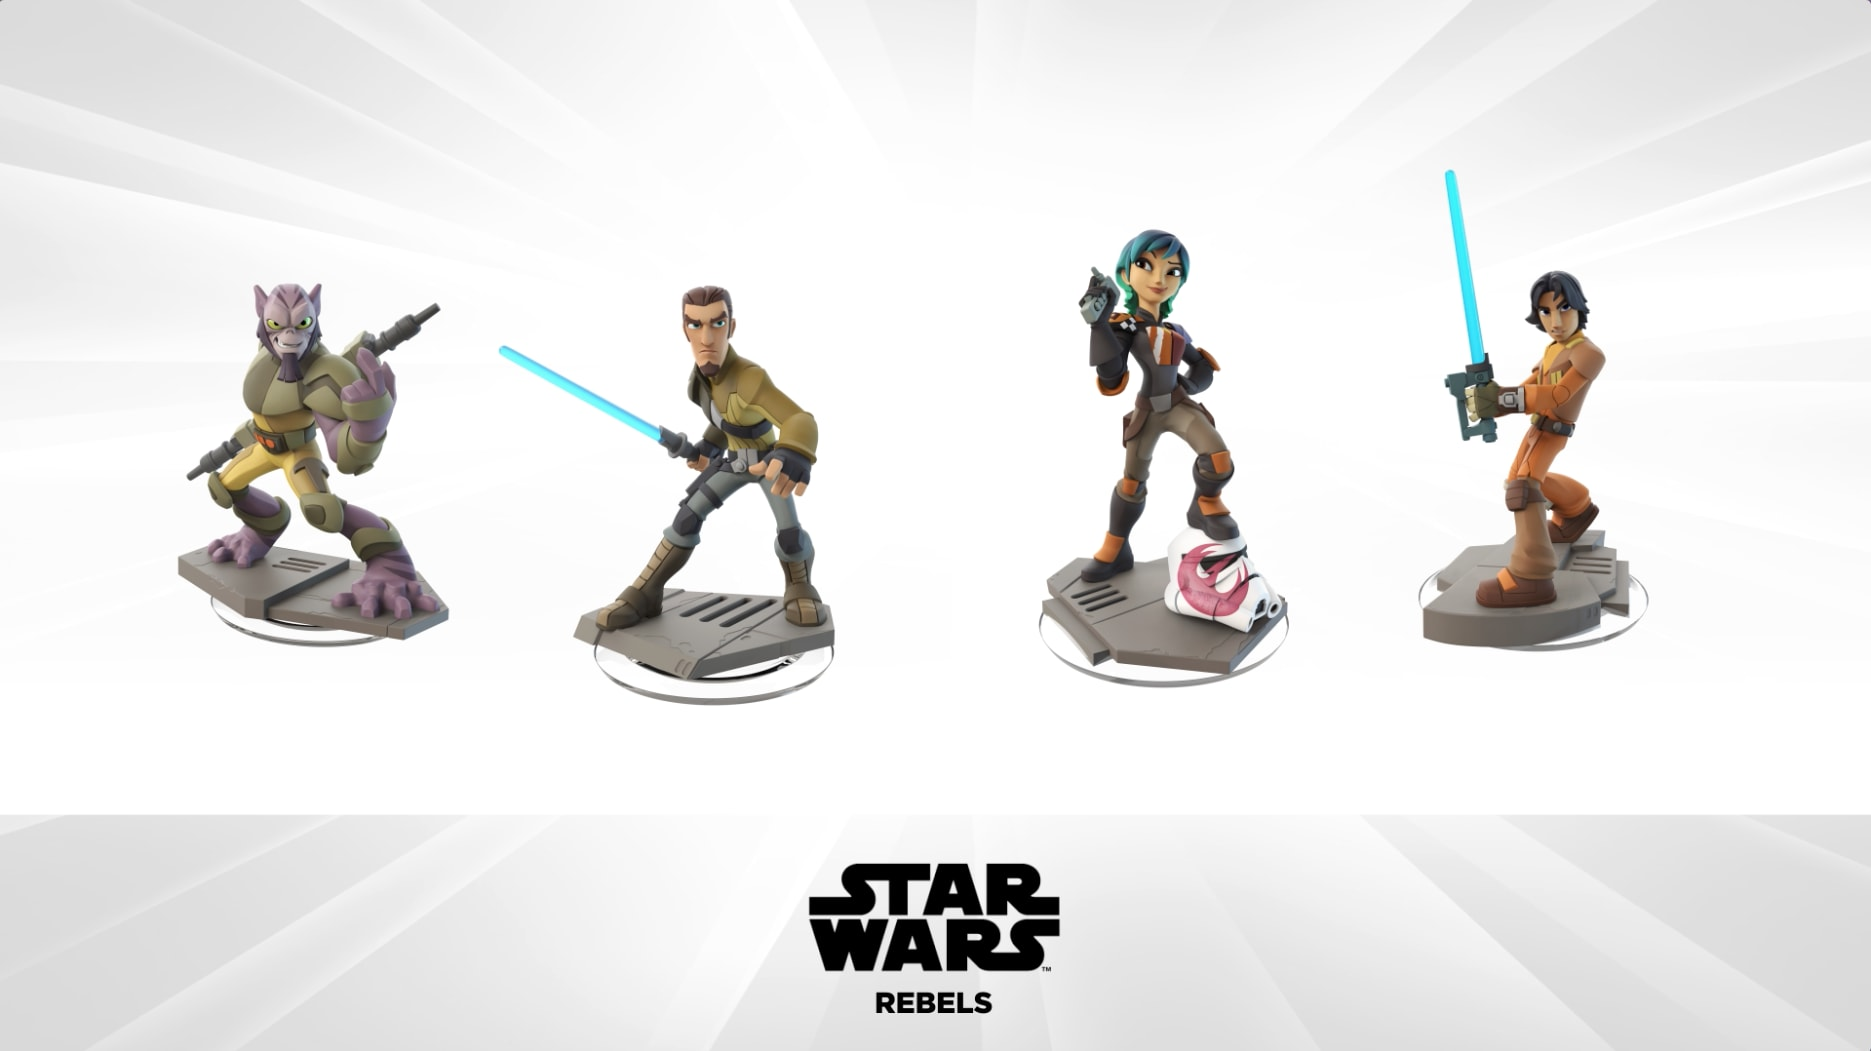 Disney Infinity 3.0: Star Wars Rebels